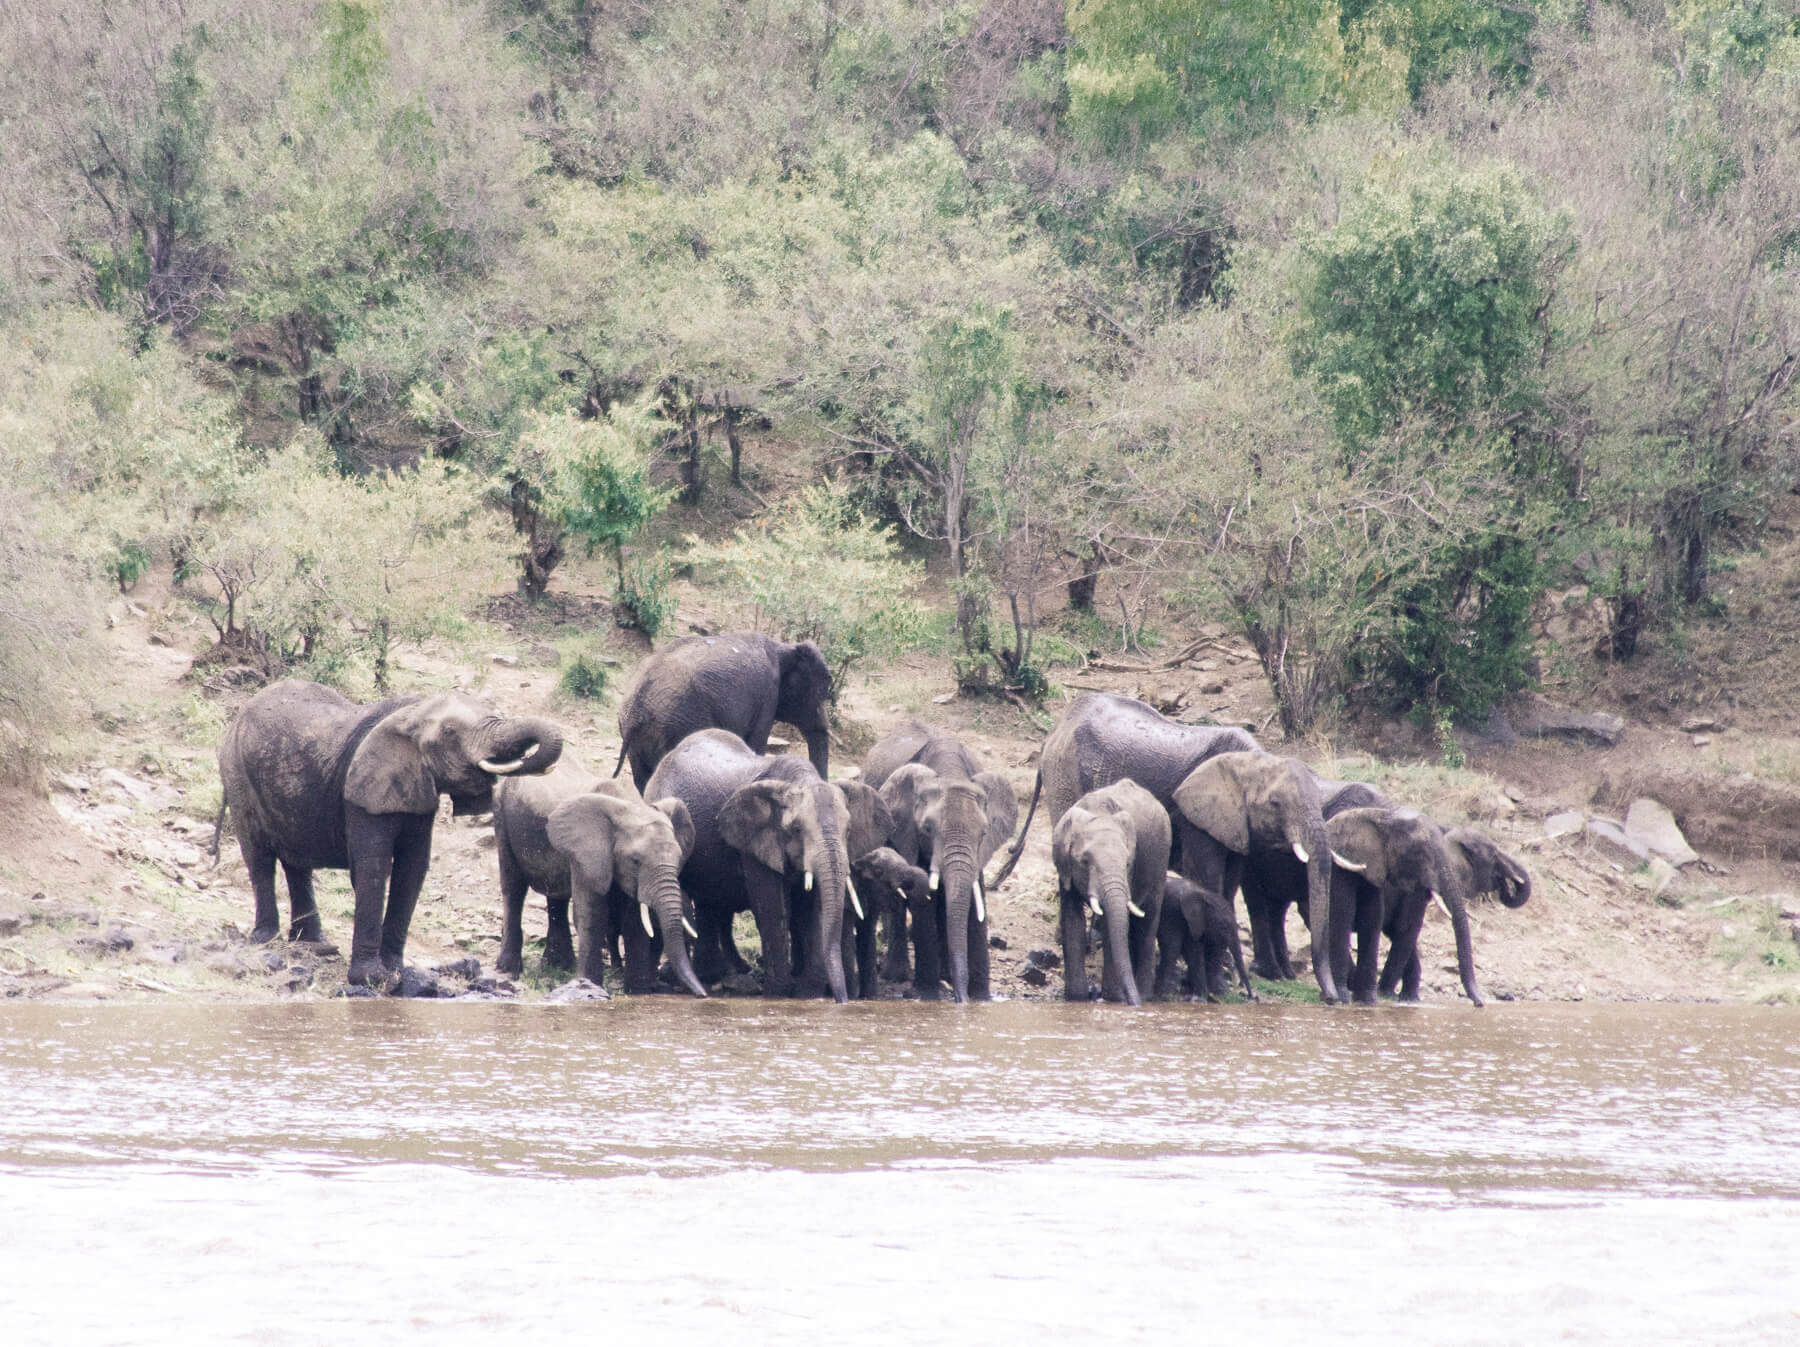 A huge herd of 11 African elephants drinking on the banks of the Mara River